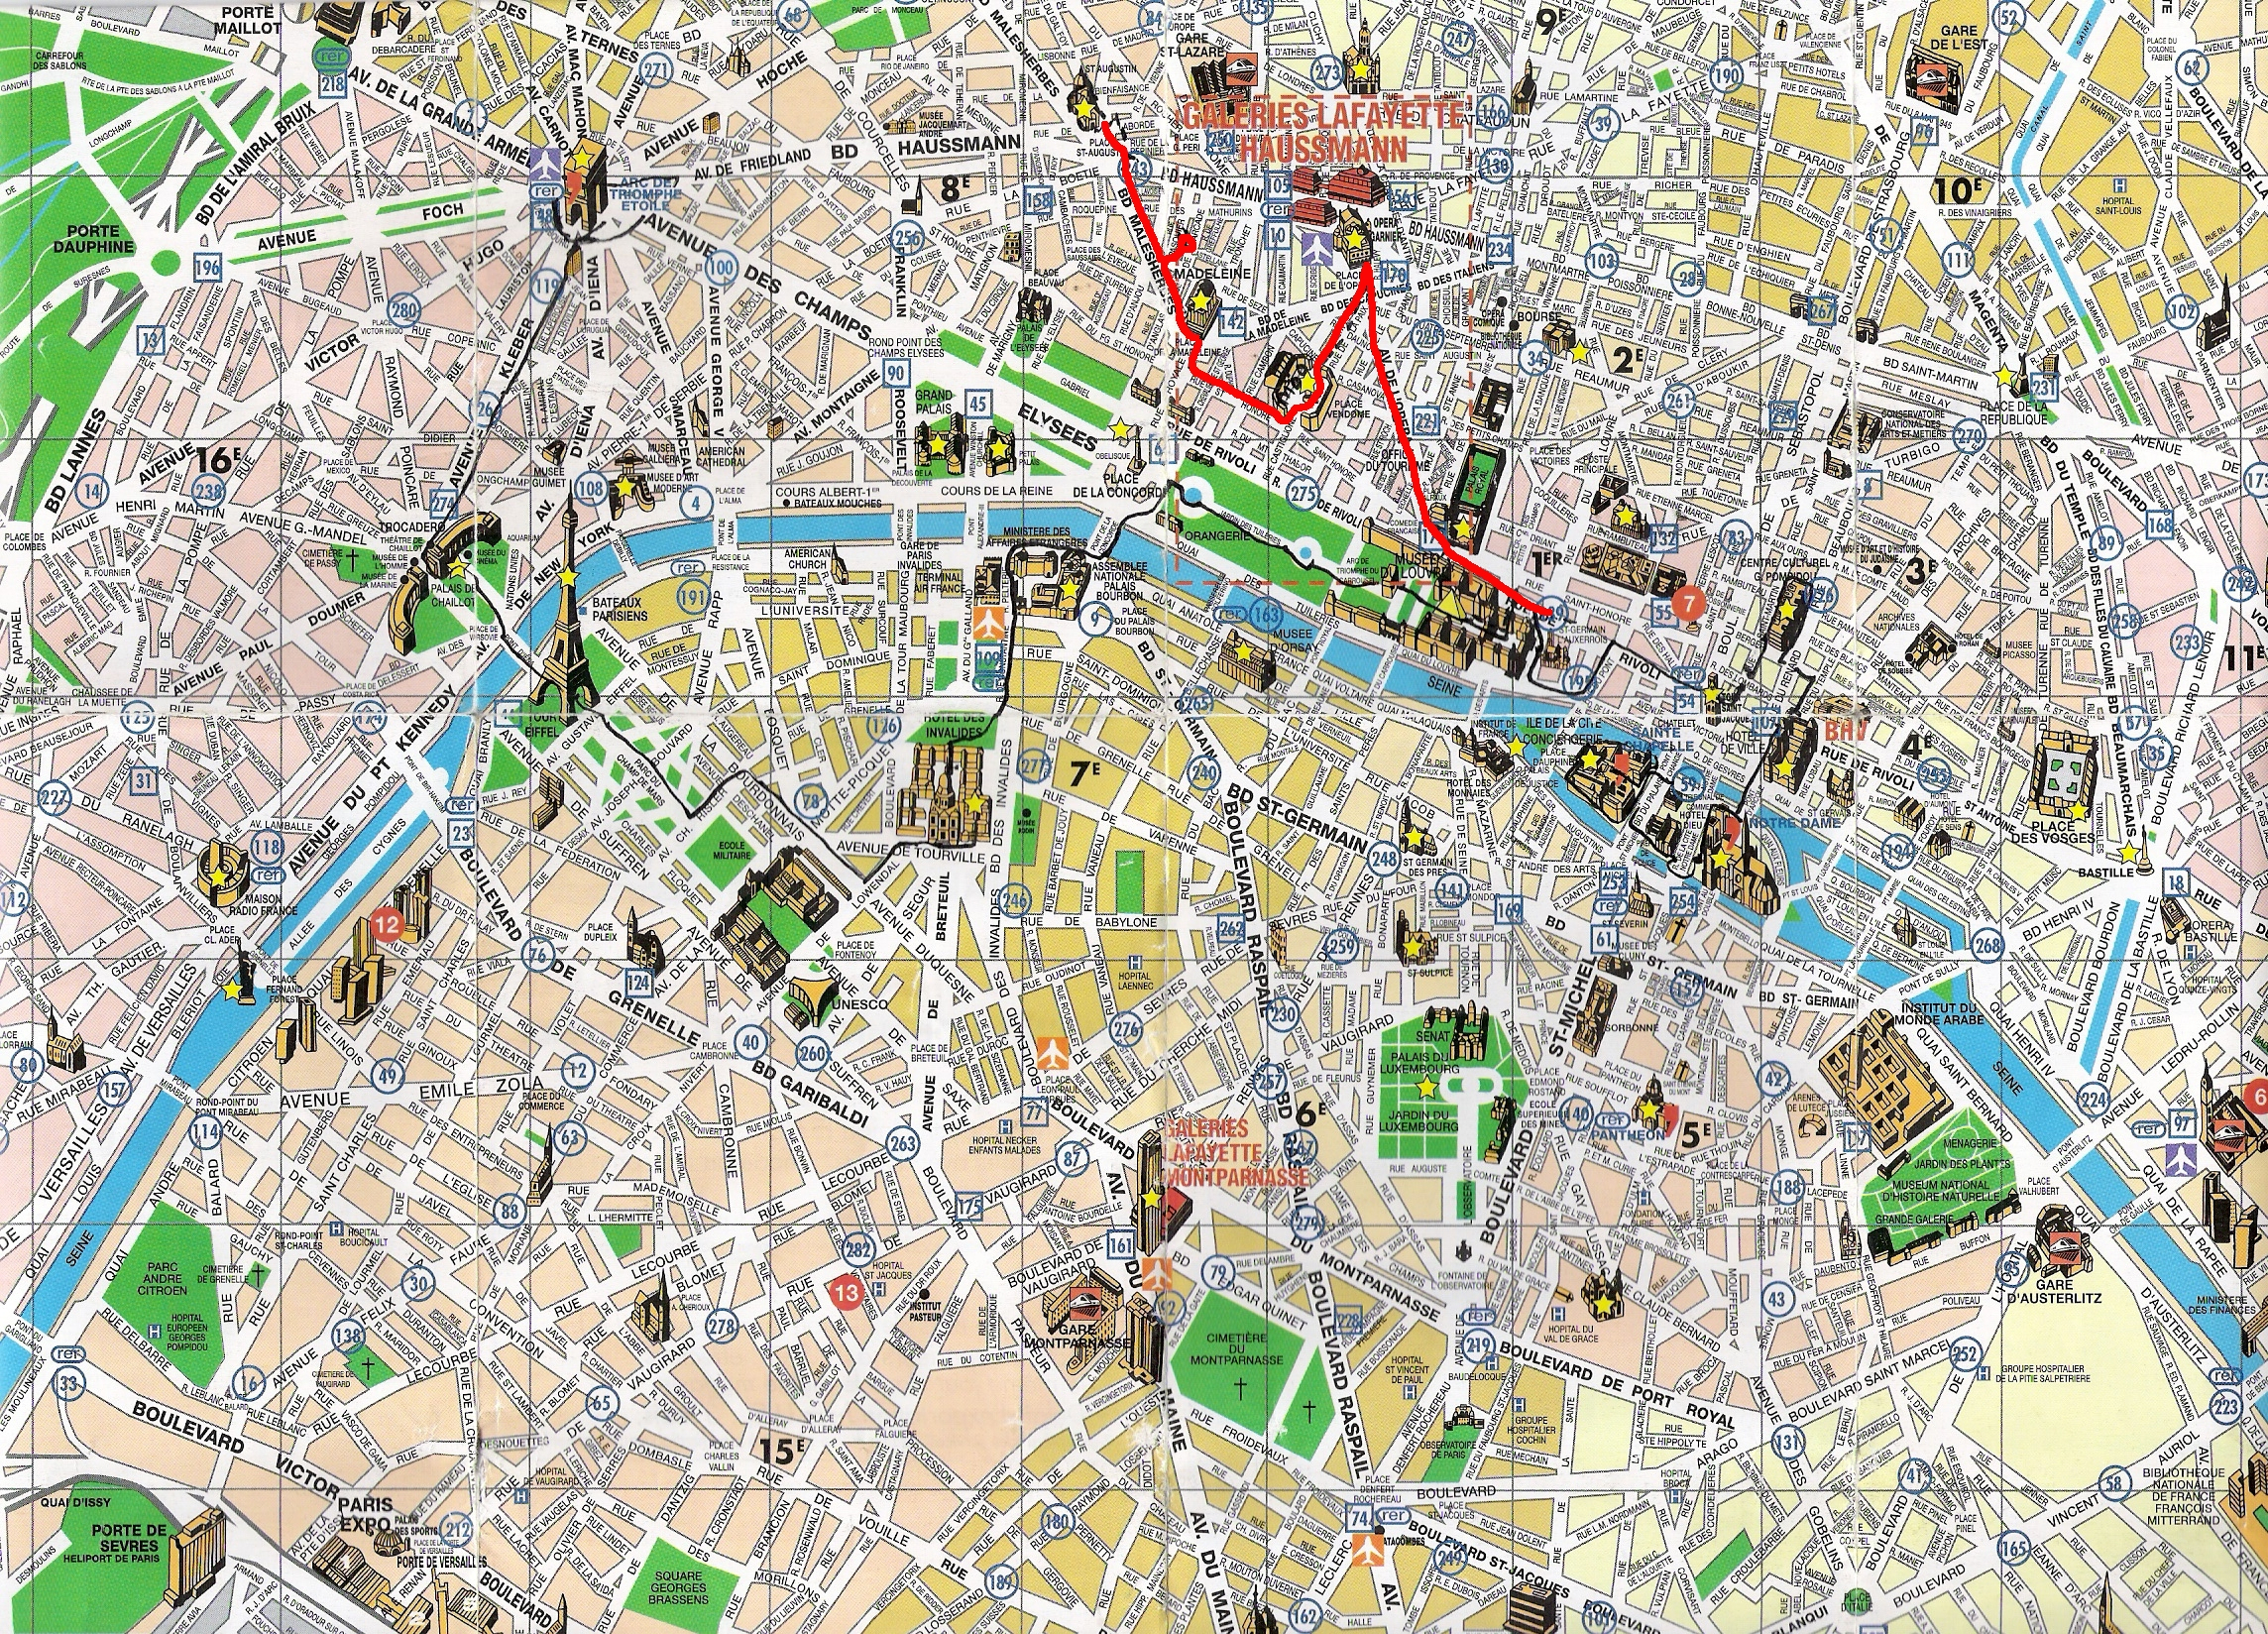 Map Of Paris Attractions Printable Download Map Paris Tourist - Printable Map Of Paris Attractions